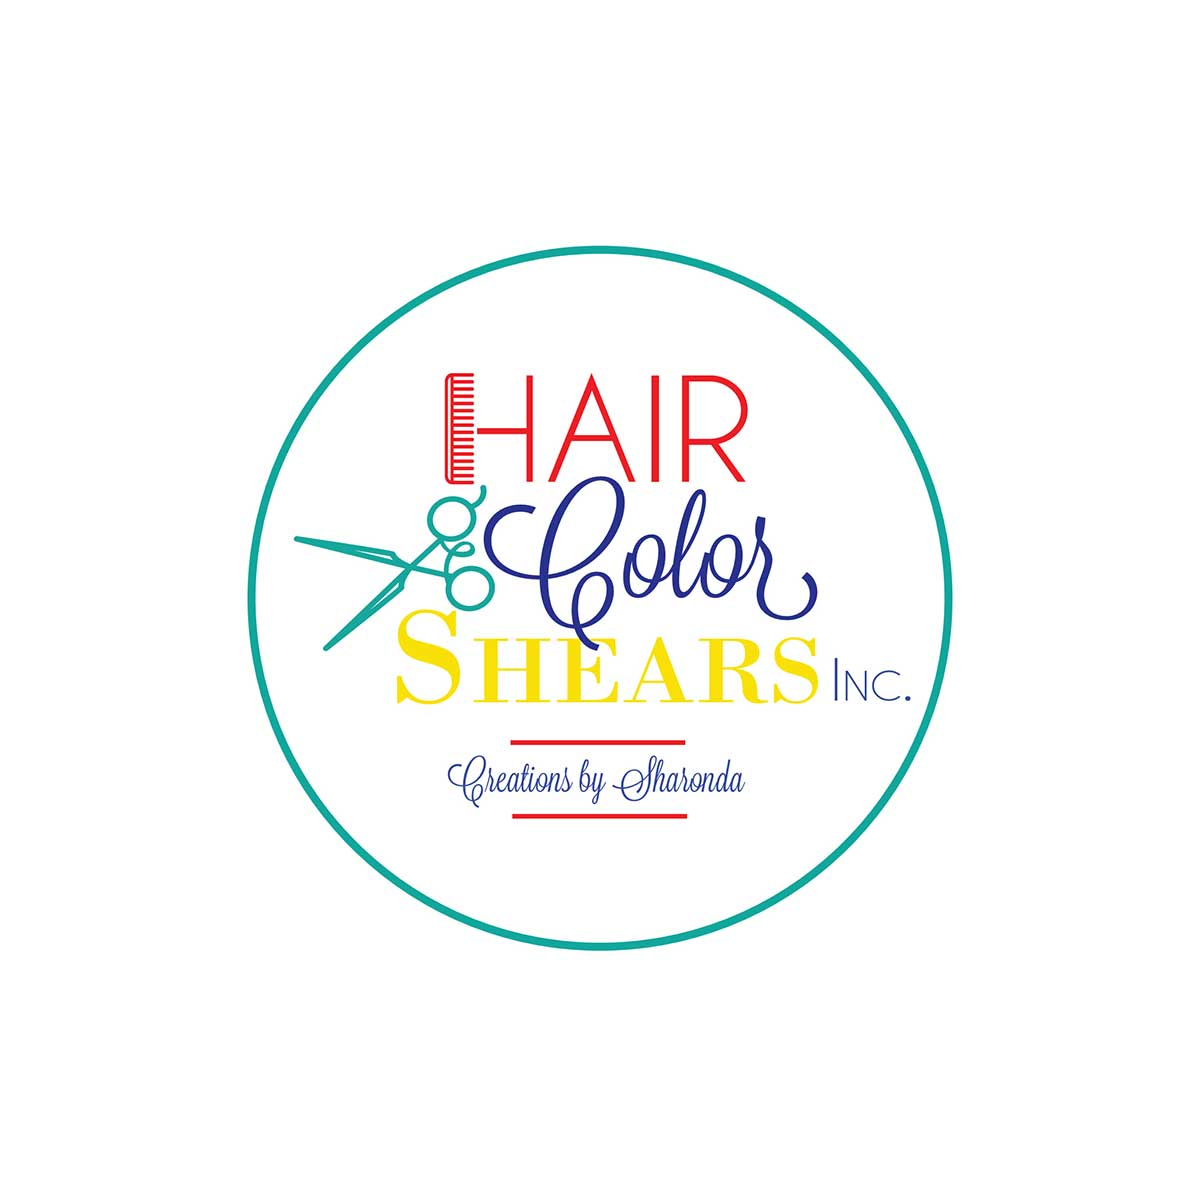 Hair Color and Shears Inc